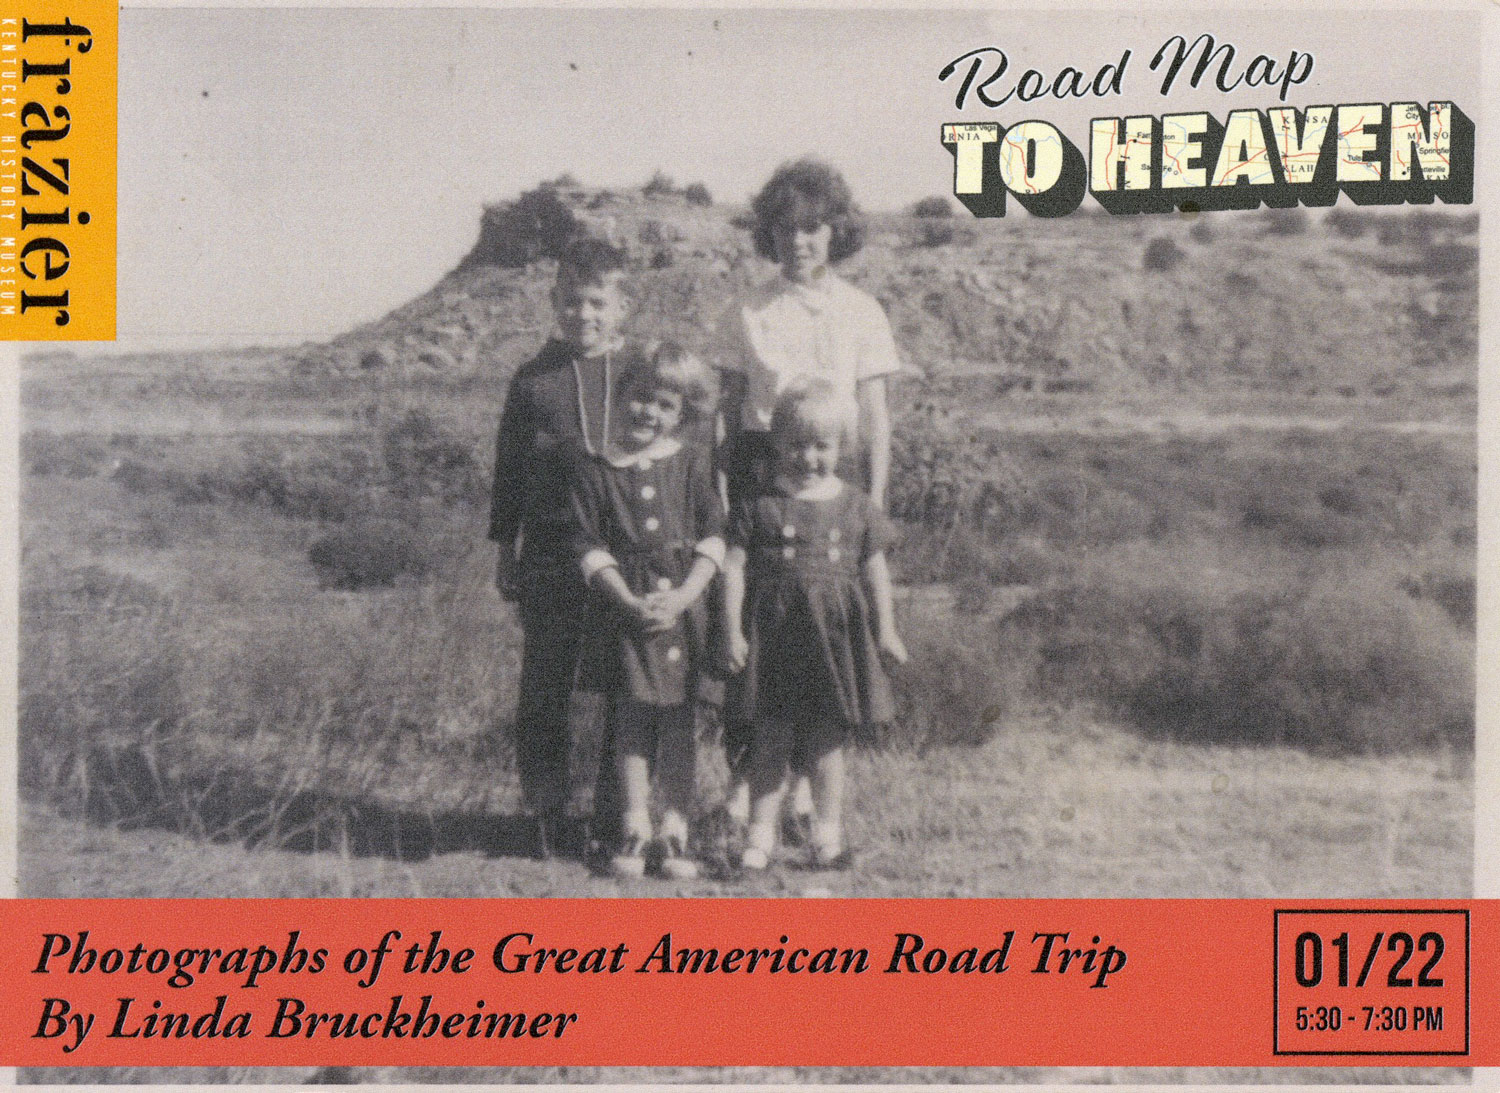 Road Map To Heaven: Photographs By Linda Bruckheimer At Frazier History Museum In Louisville, Kentucky